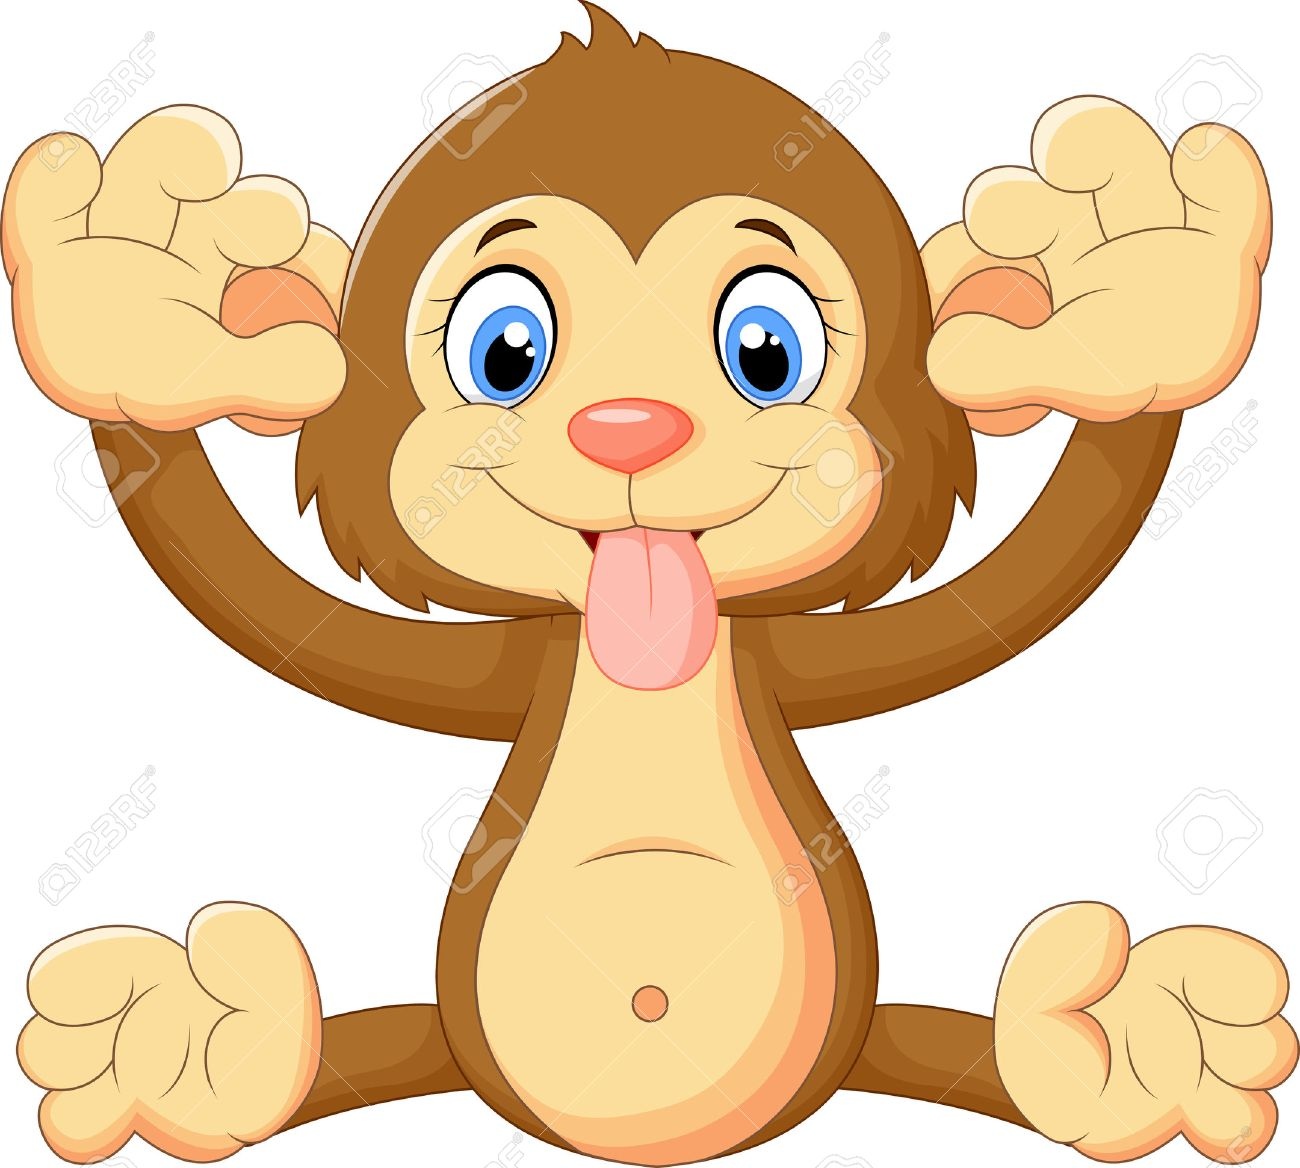 Cartoon monkey making a face and showing his tongue stock vector 38817198